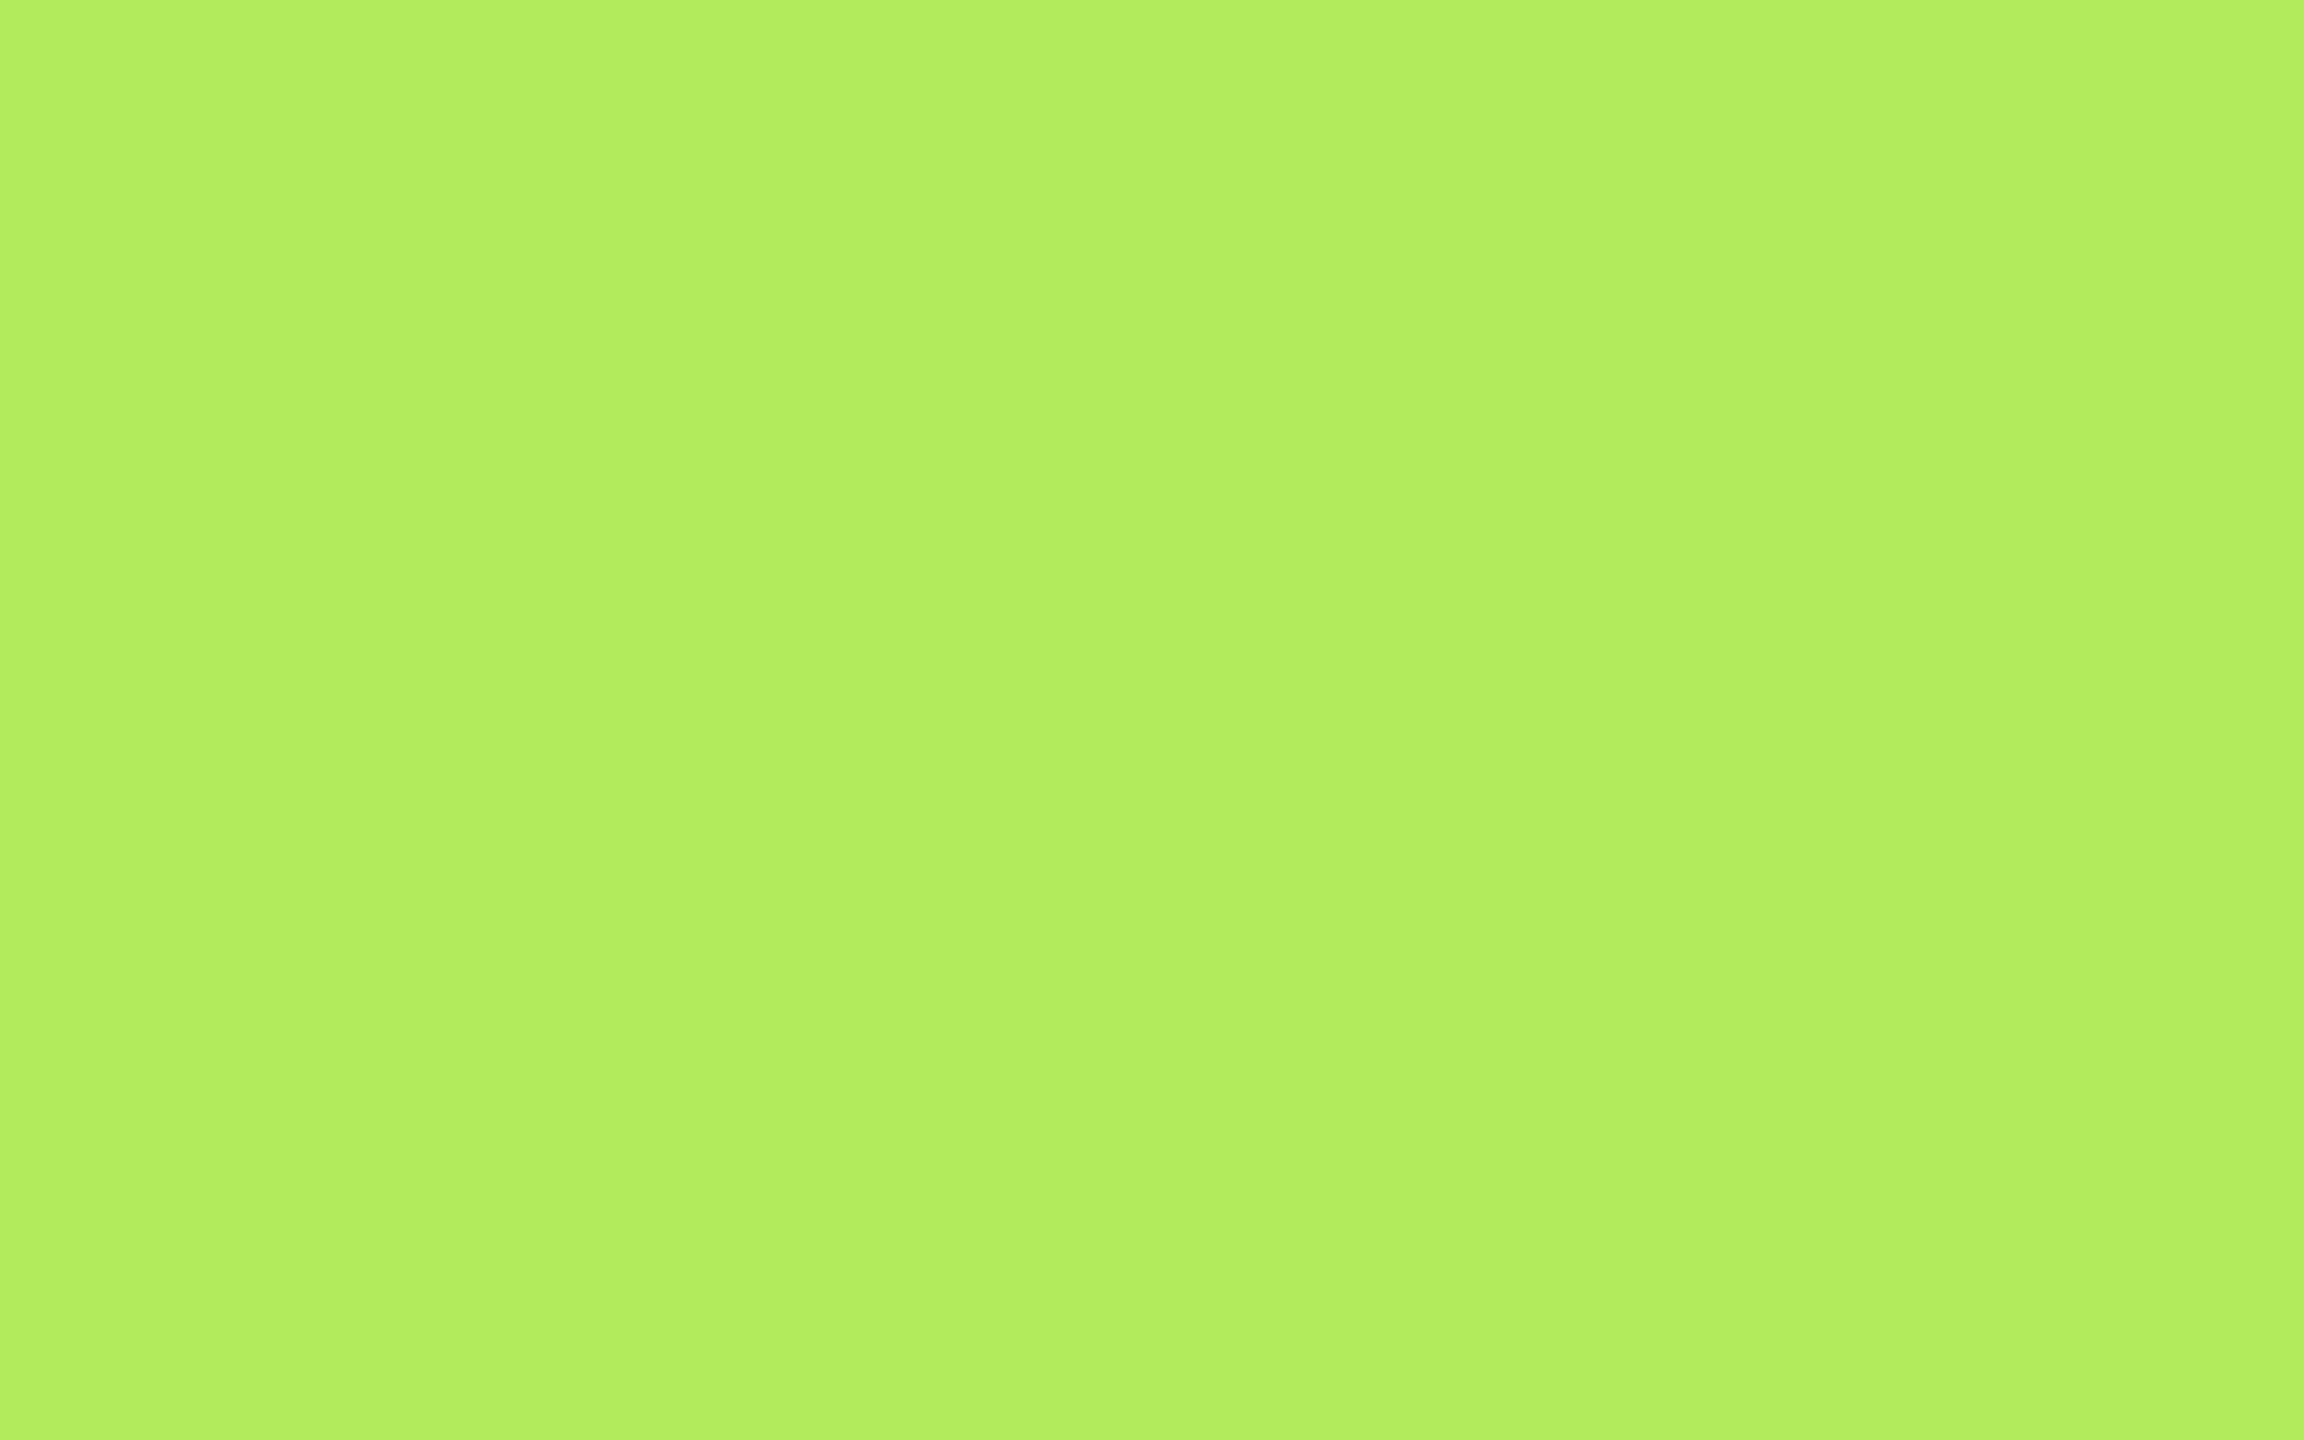 2304x1440 Inchworm Solid Color Background